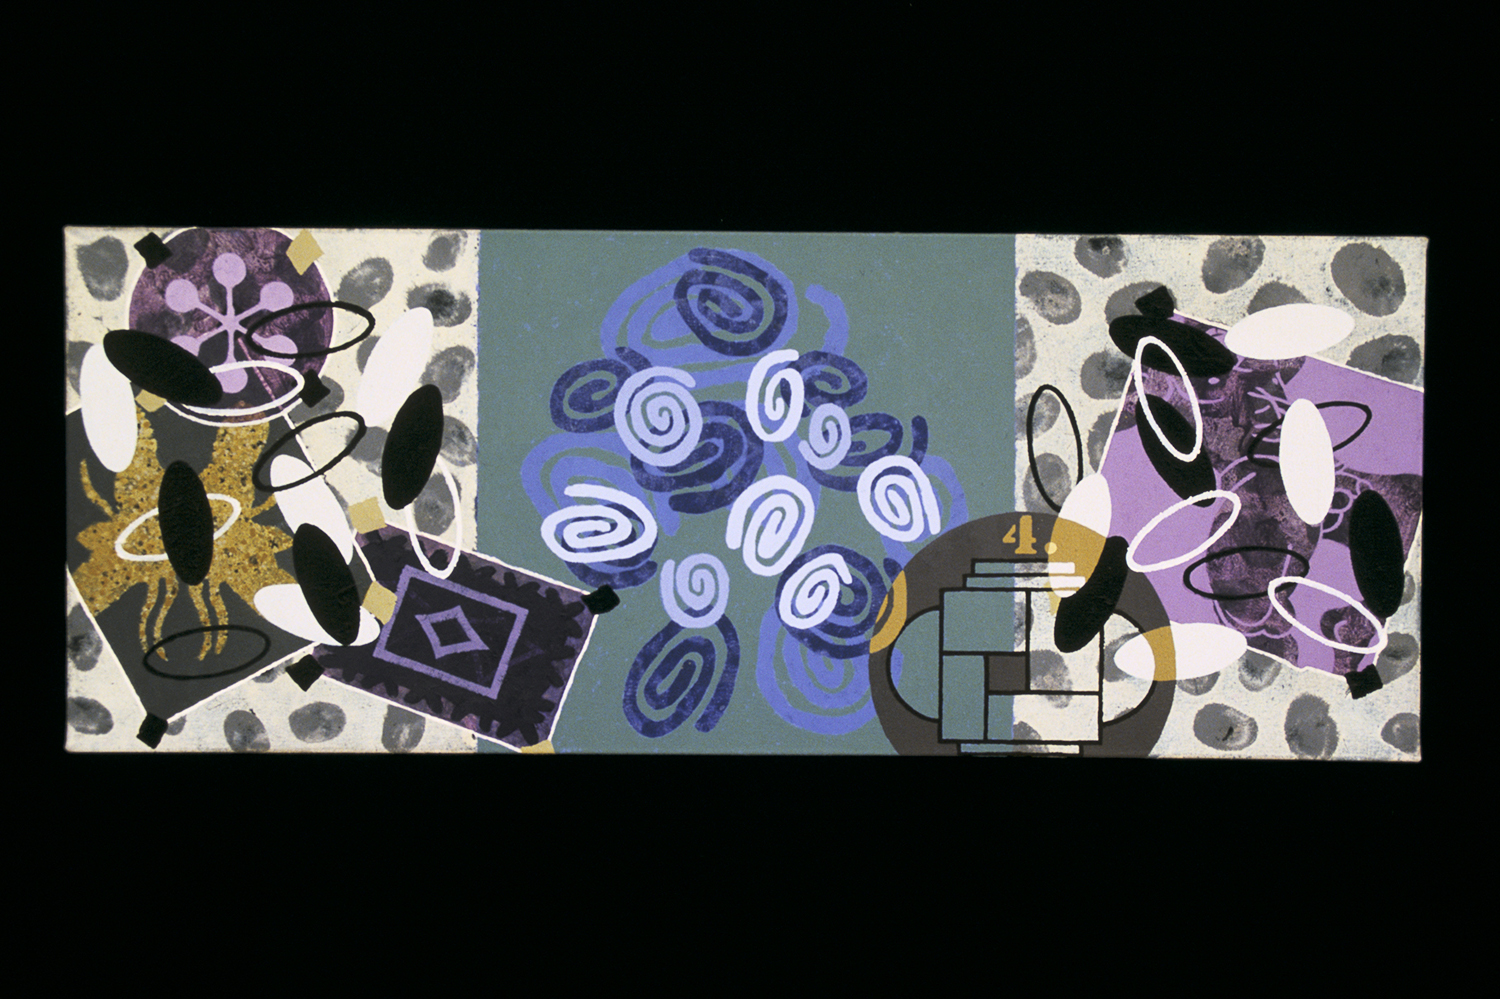 Triptych 4  , 2001, oil and wax on canvas, 12 x 36 in.